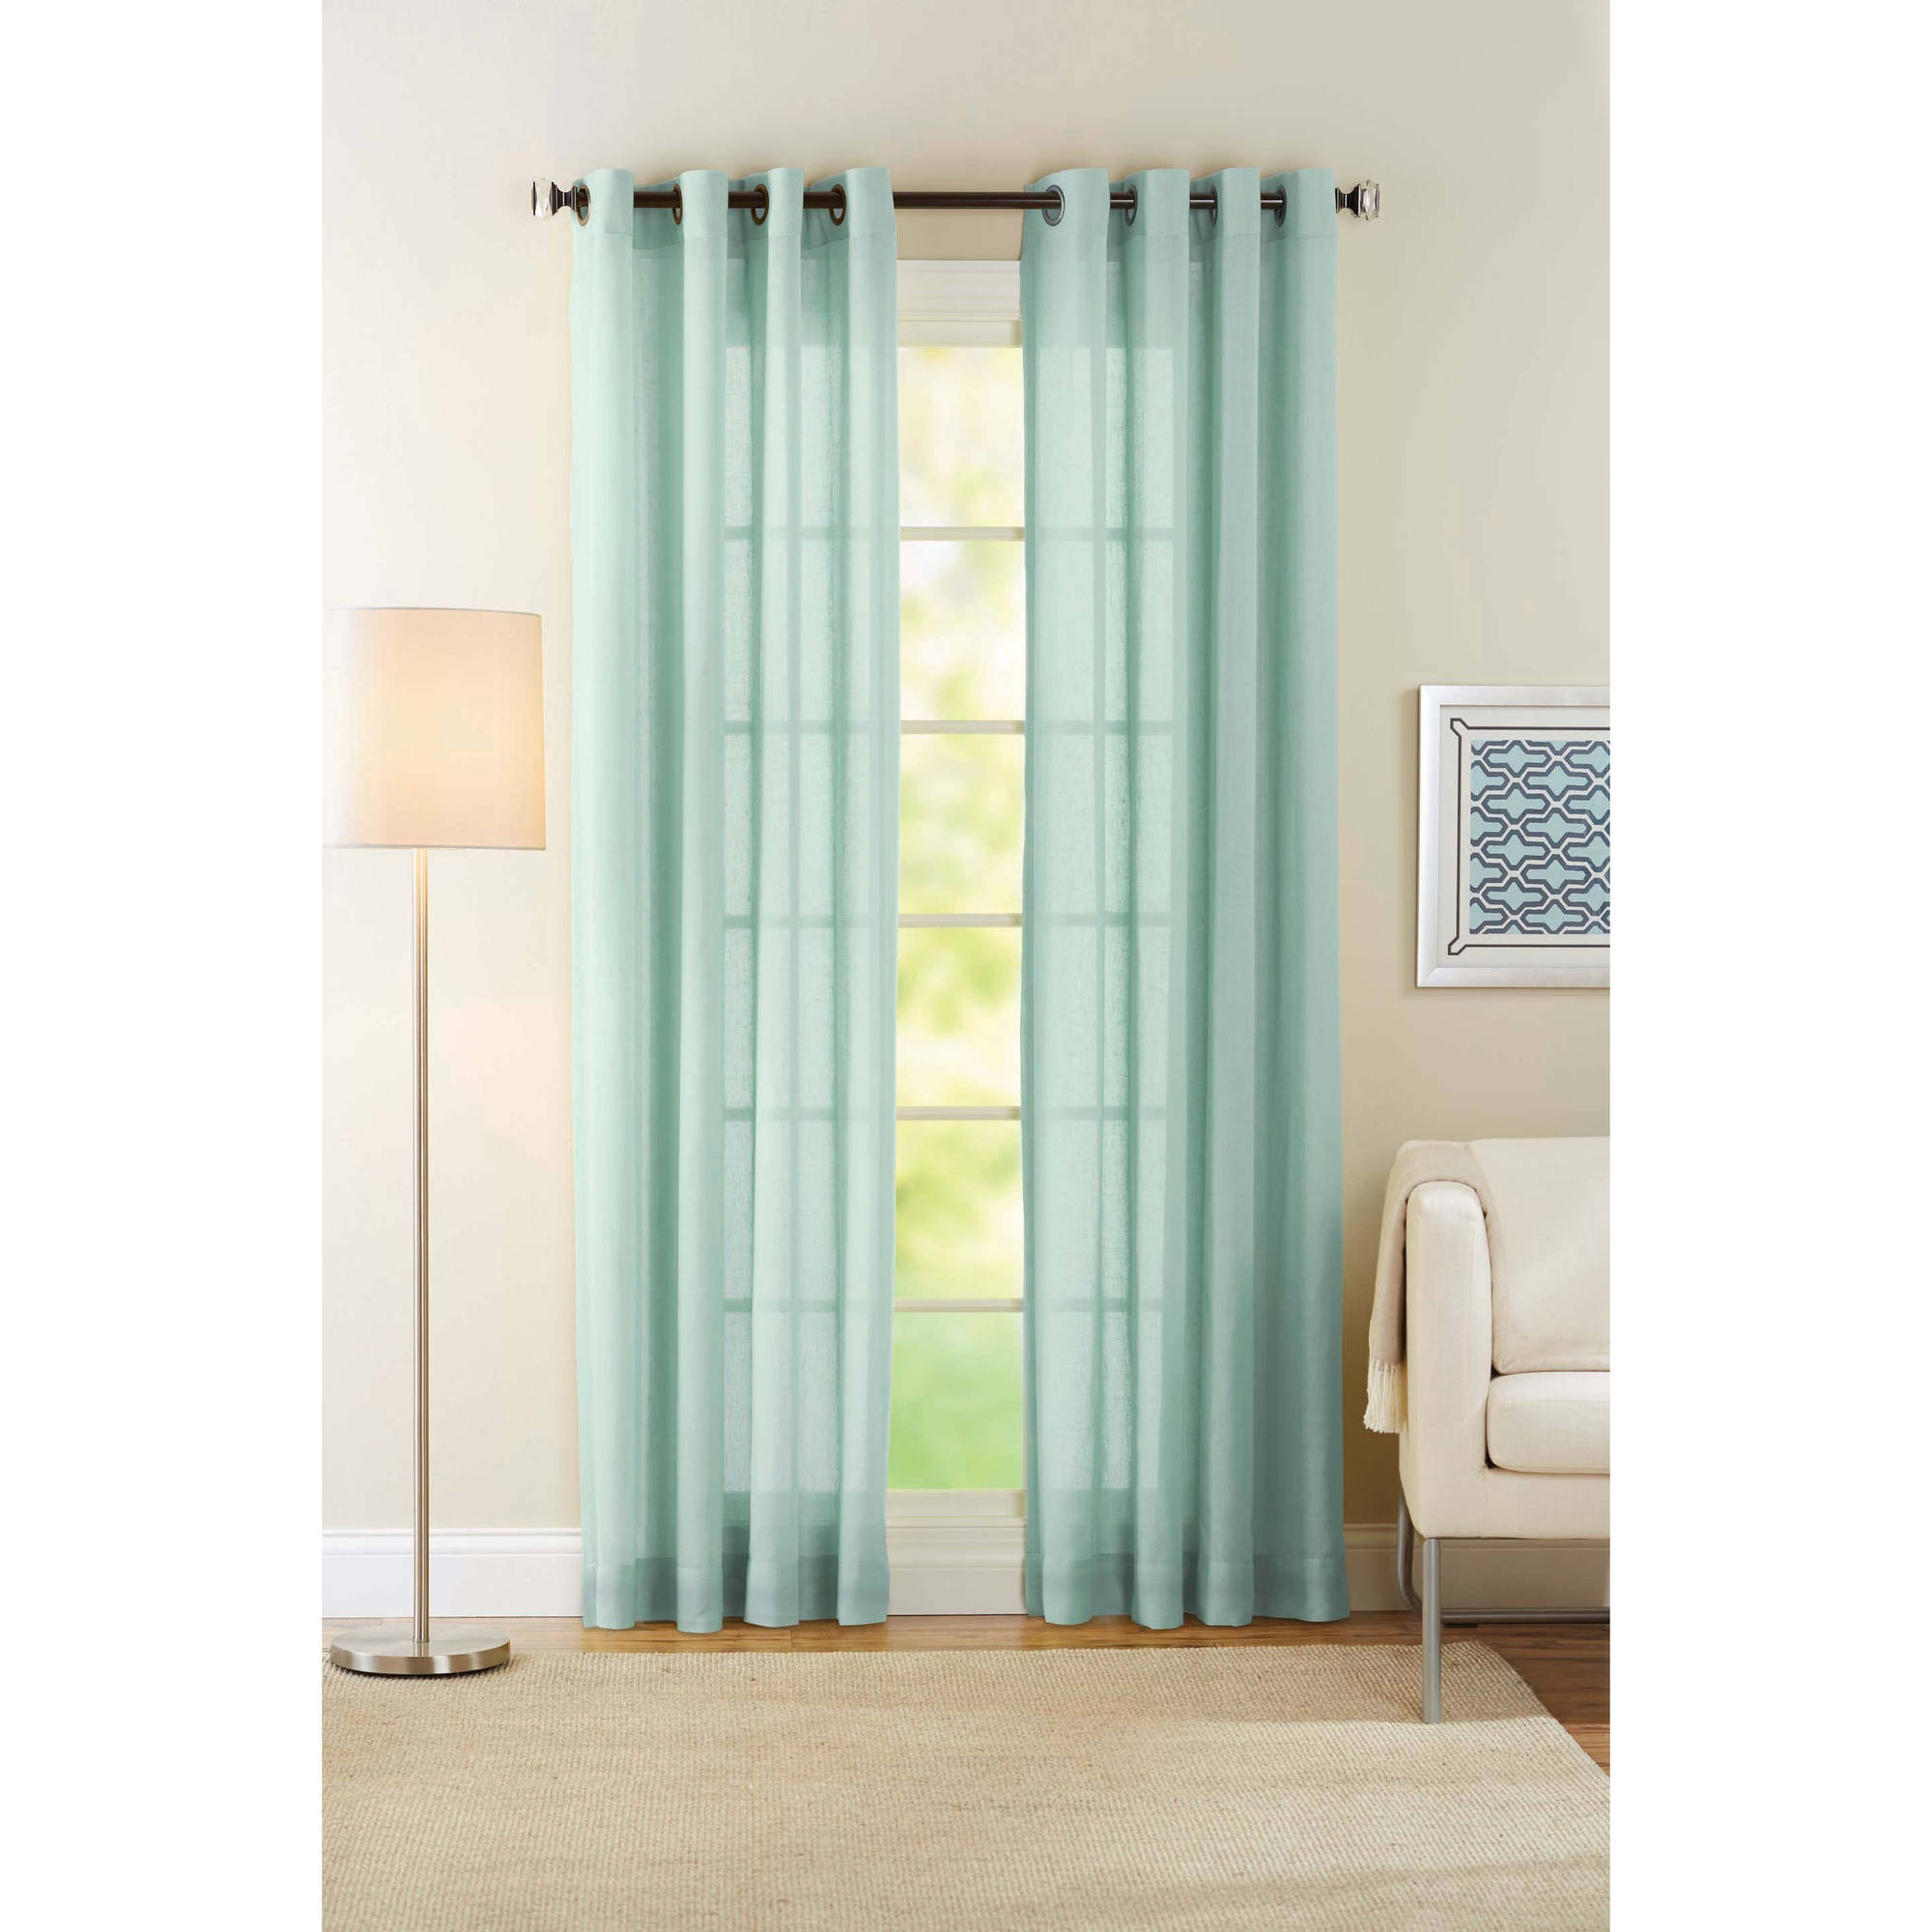 Better Homes And Gardens Semi Sheer Window Curtain Walmart Inside Curtains Sheers (Image 5 of 25)